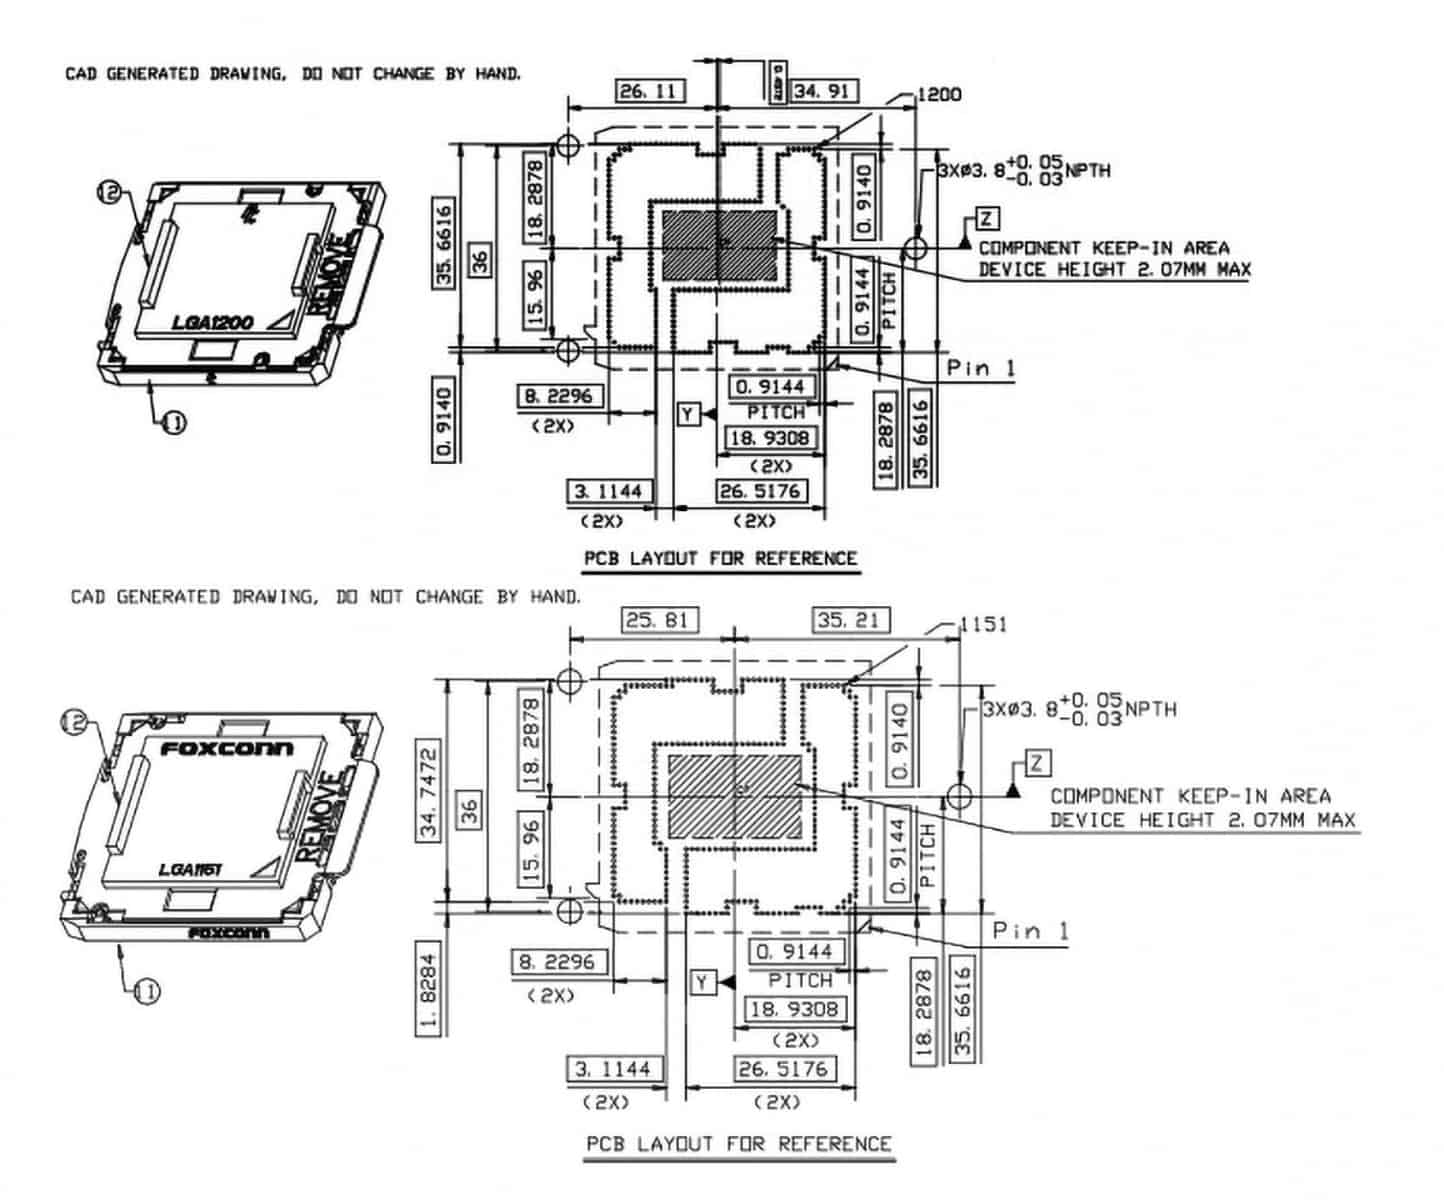 LGA Socket Layout